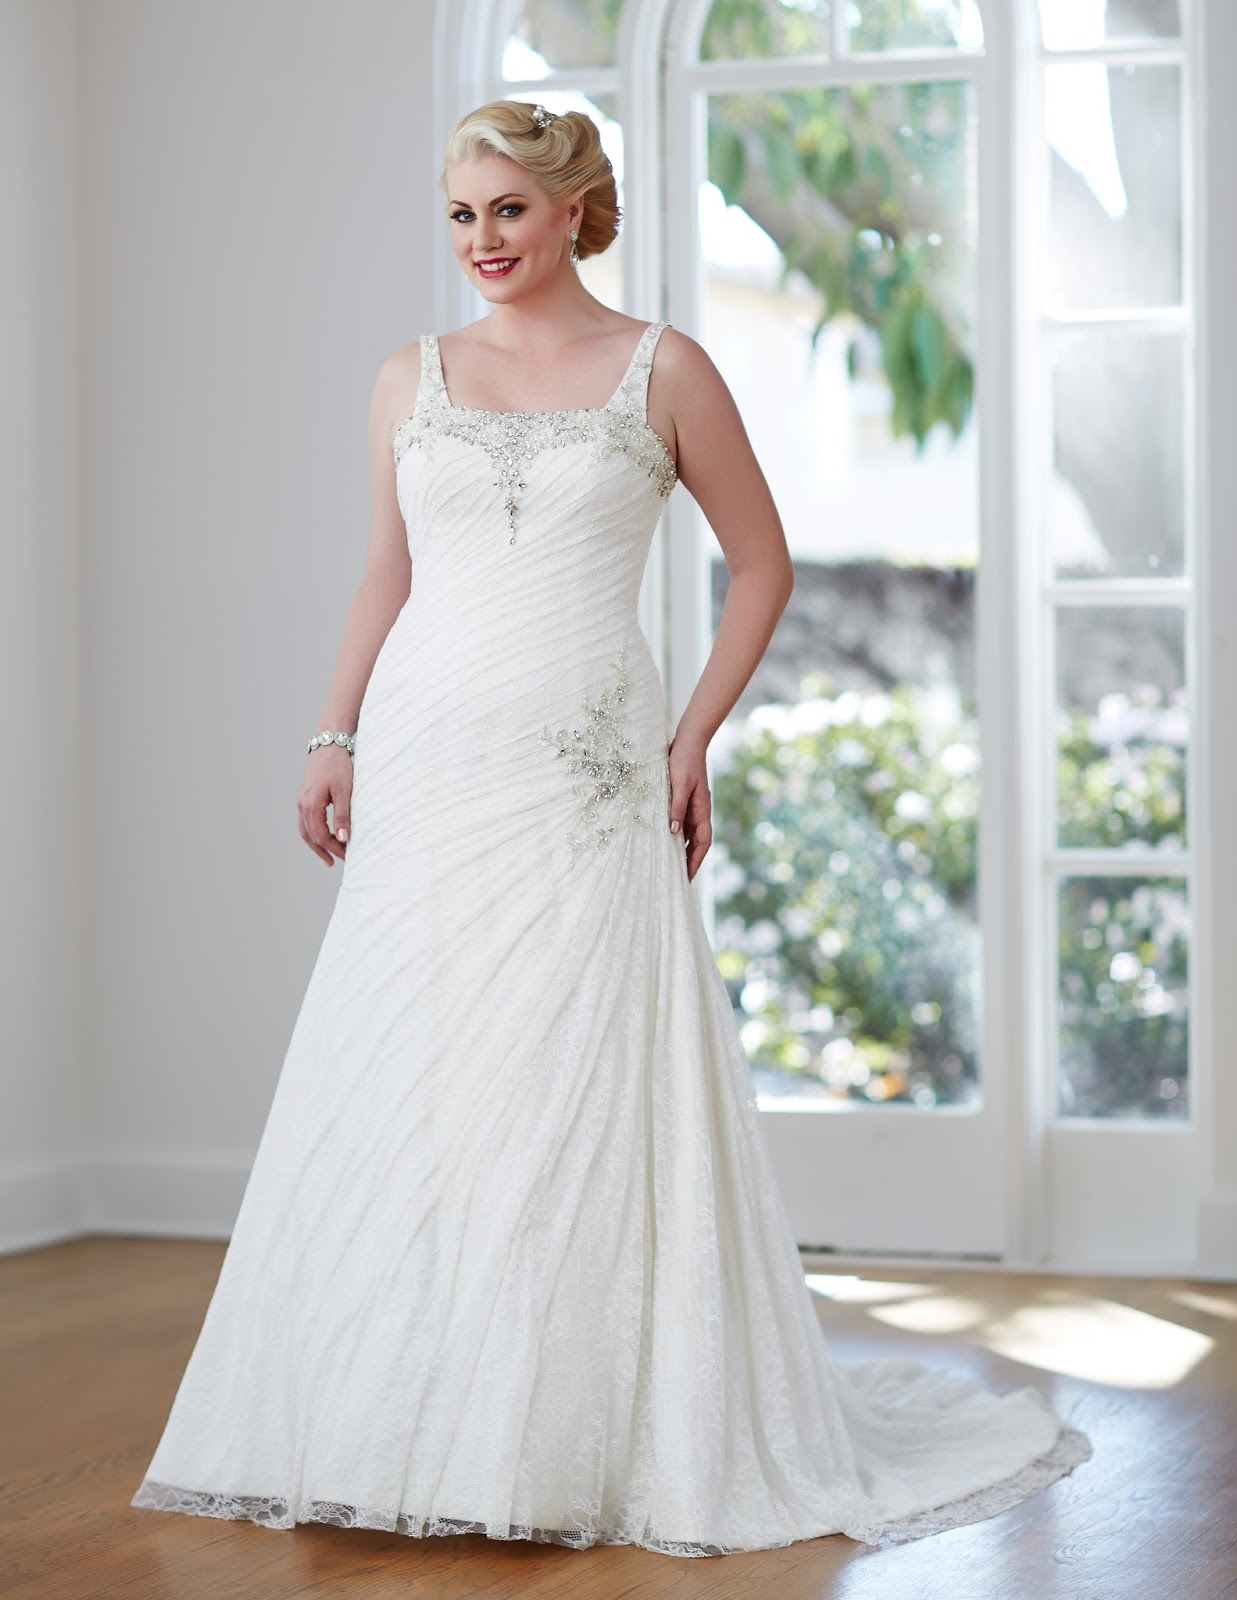 Wedding Dresses For Mature Brides-9145